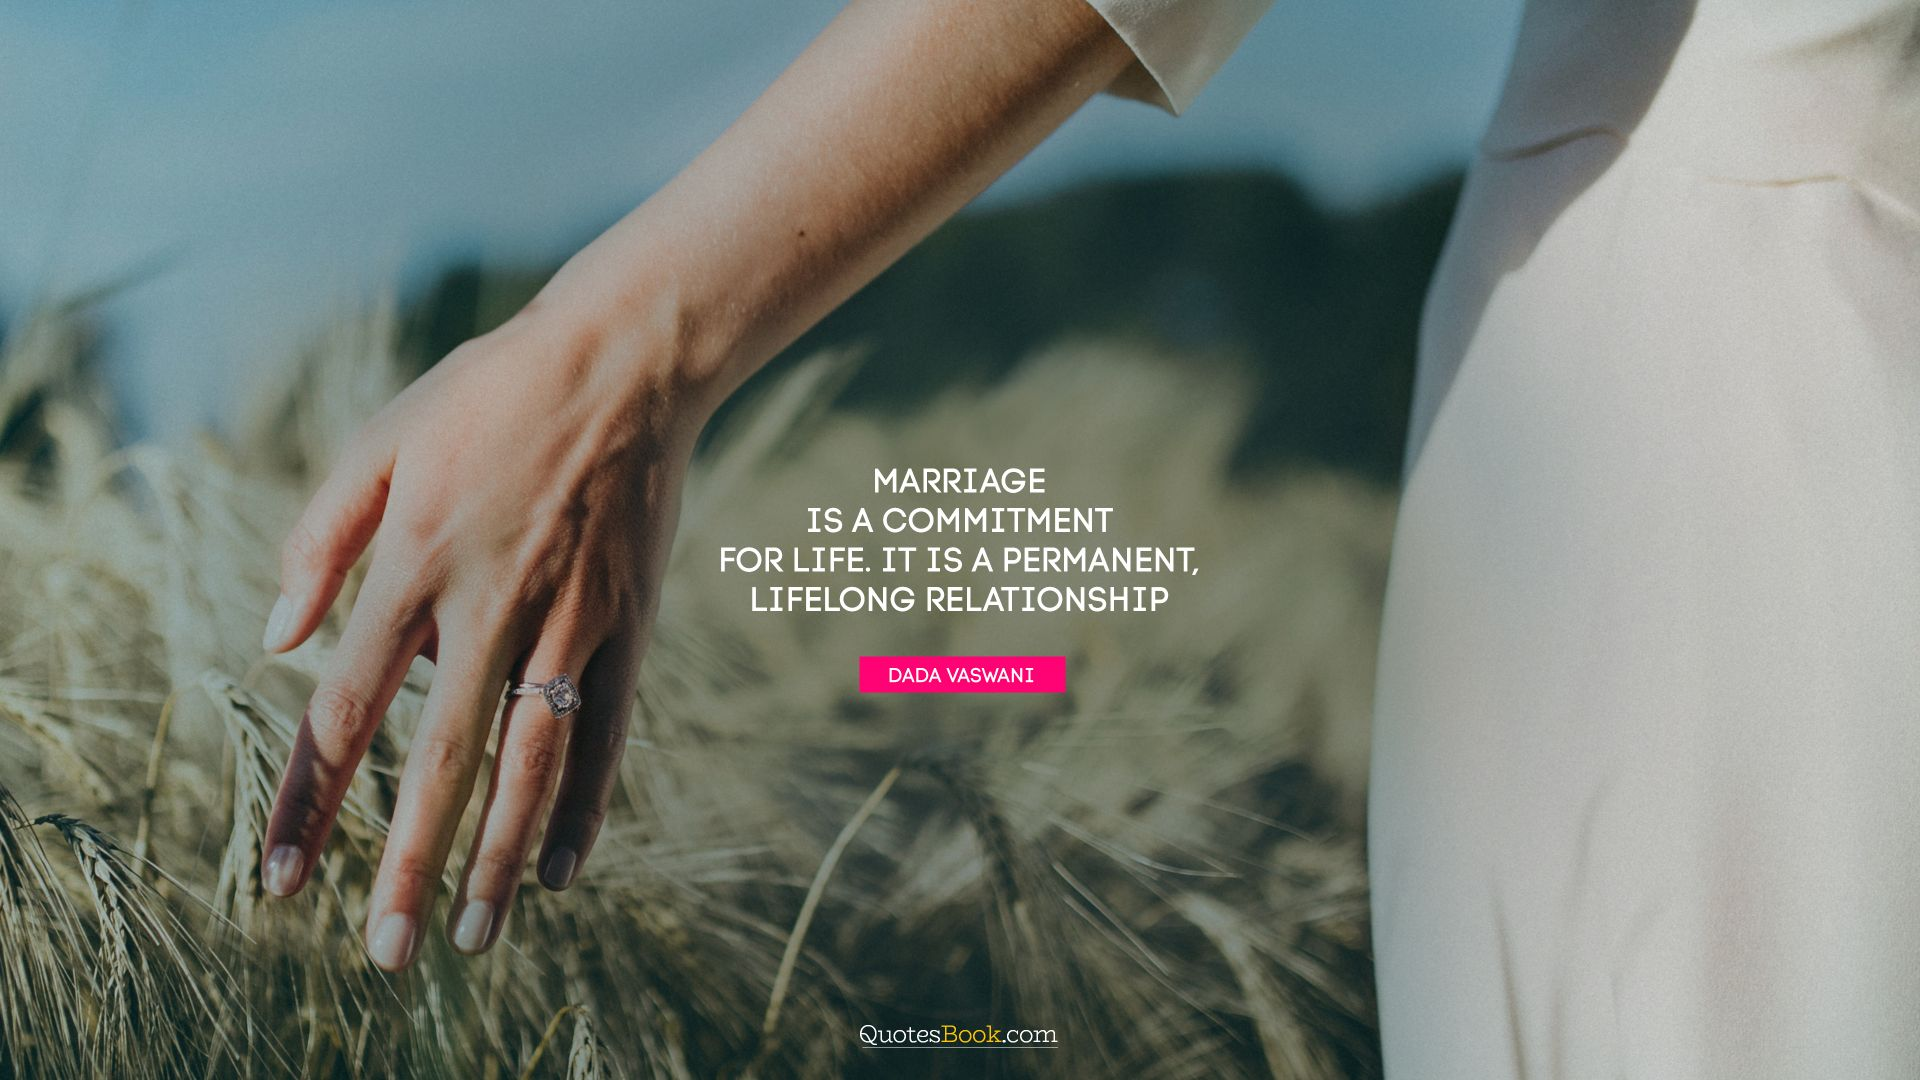 marriage is a commitment for life it is a permanent lifelong